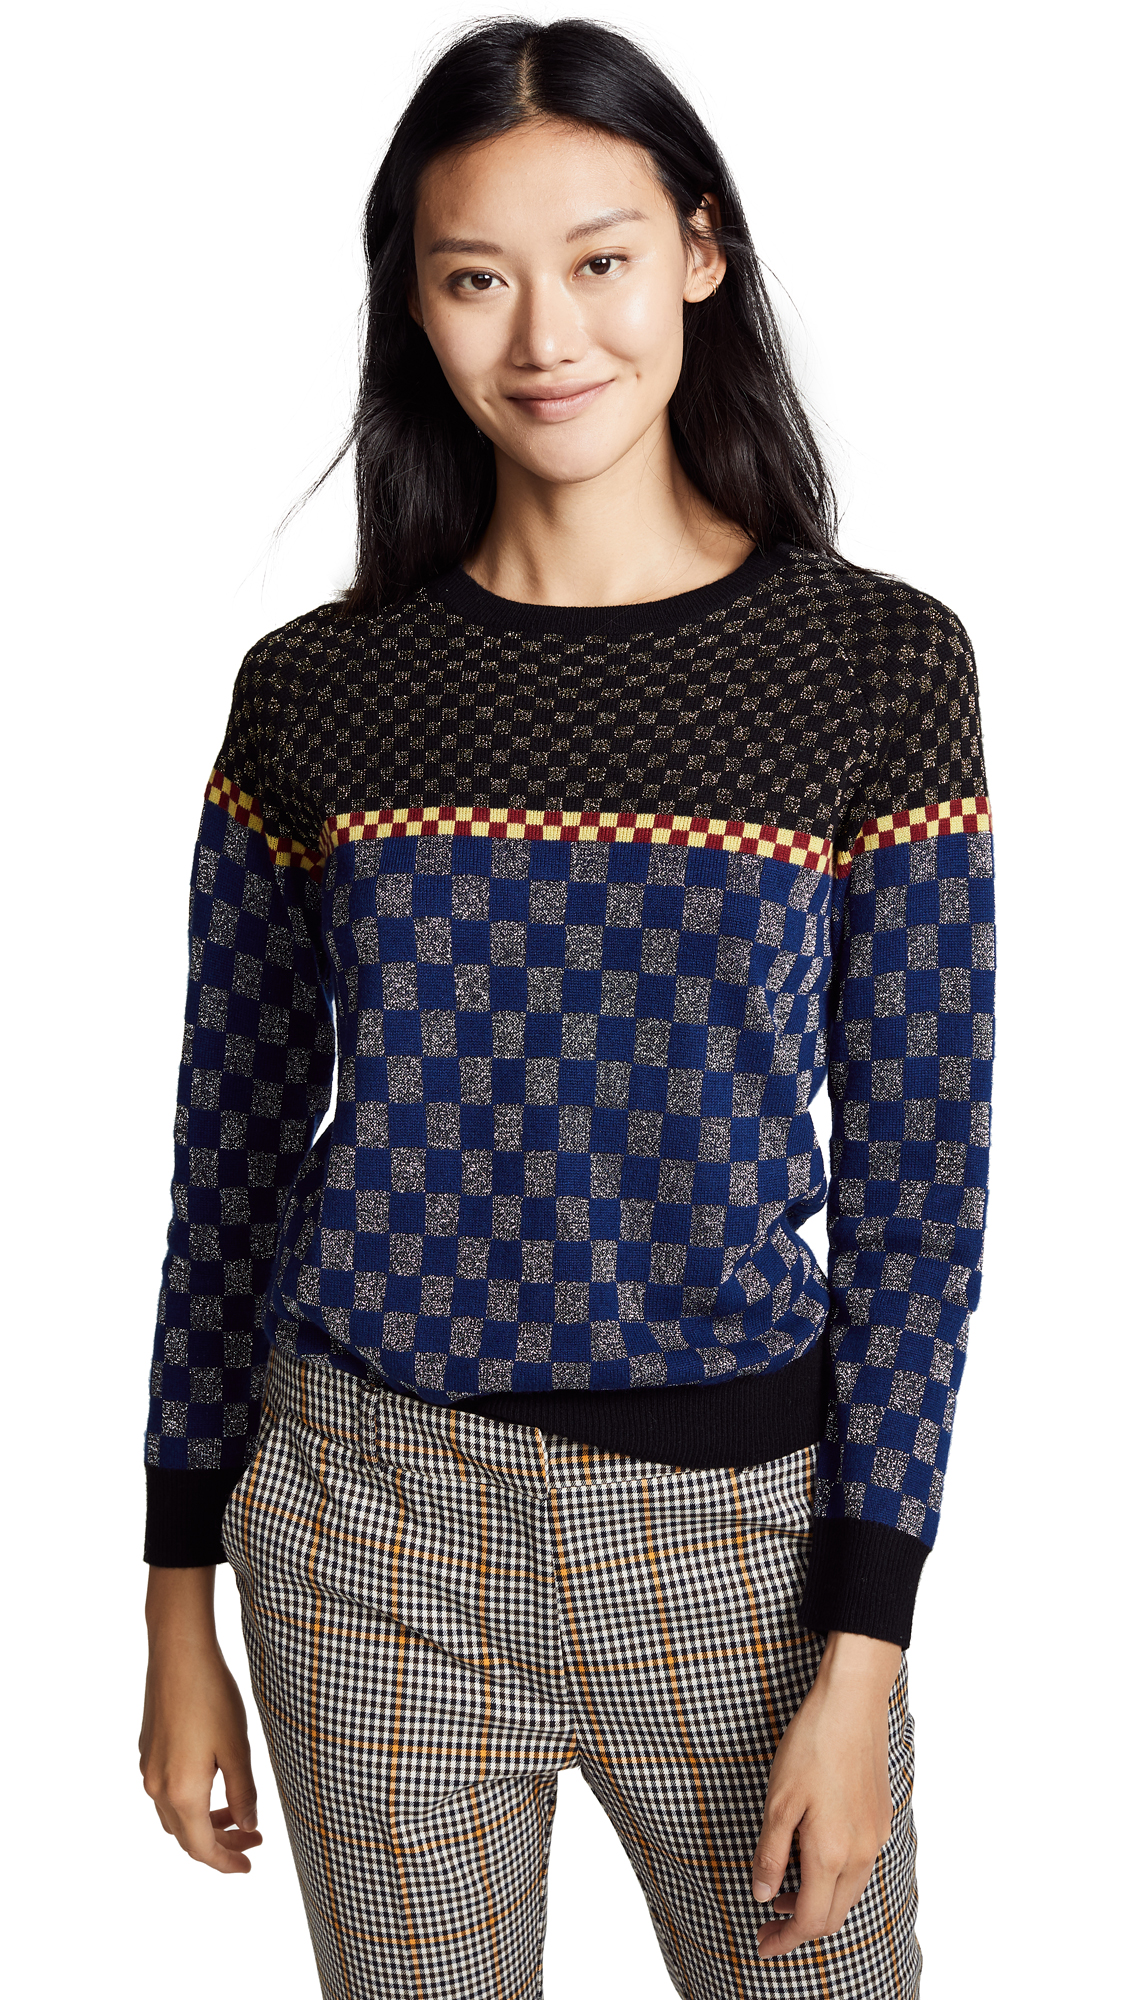 REPLICA LOS ANGELES Checkerboard Jacquard Sweatshirt in Black/Navy